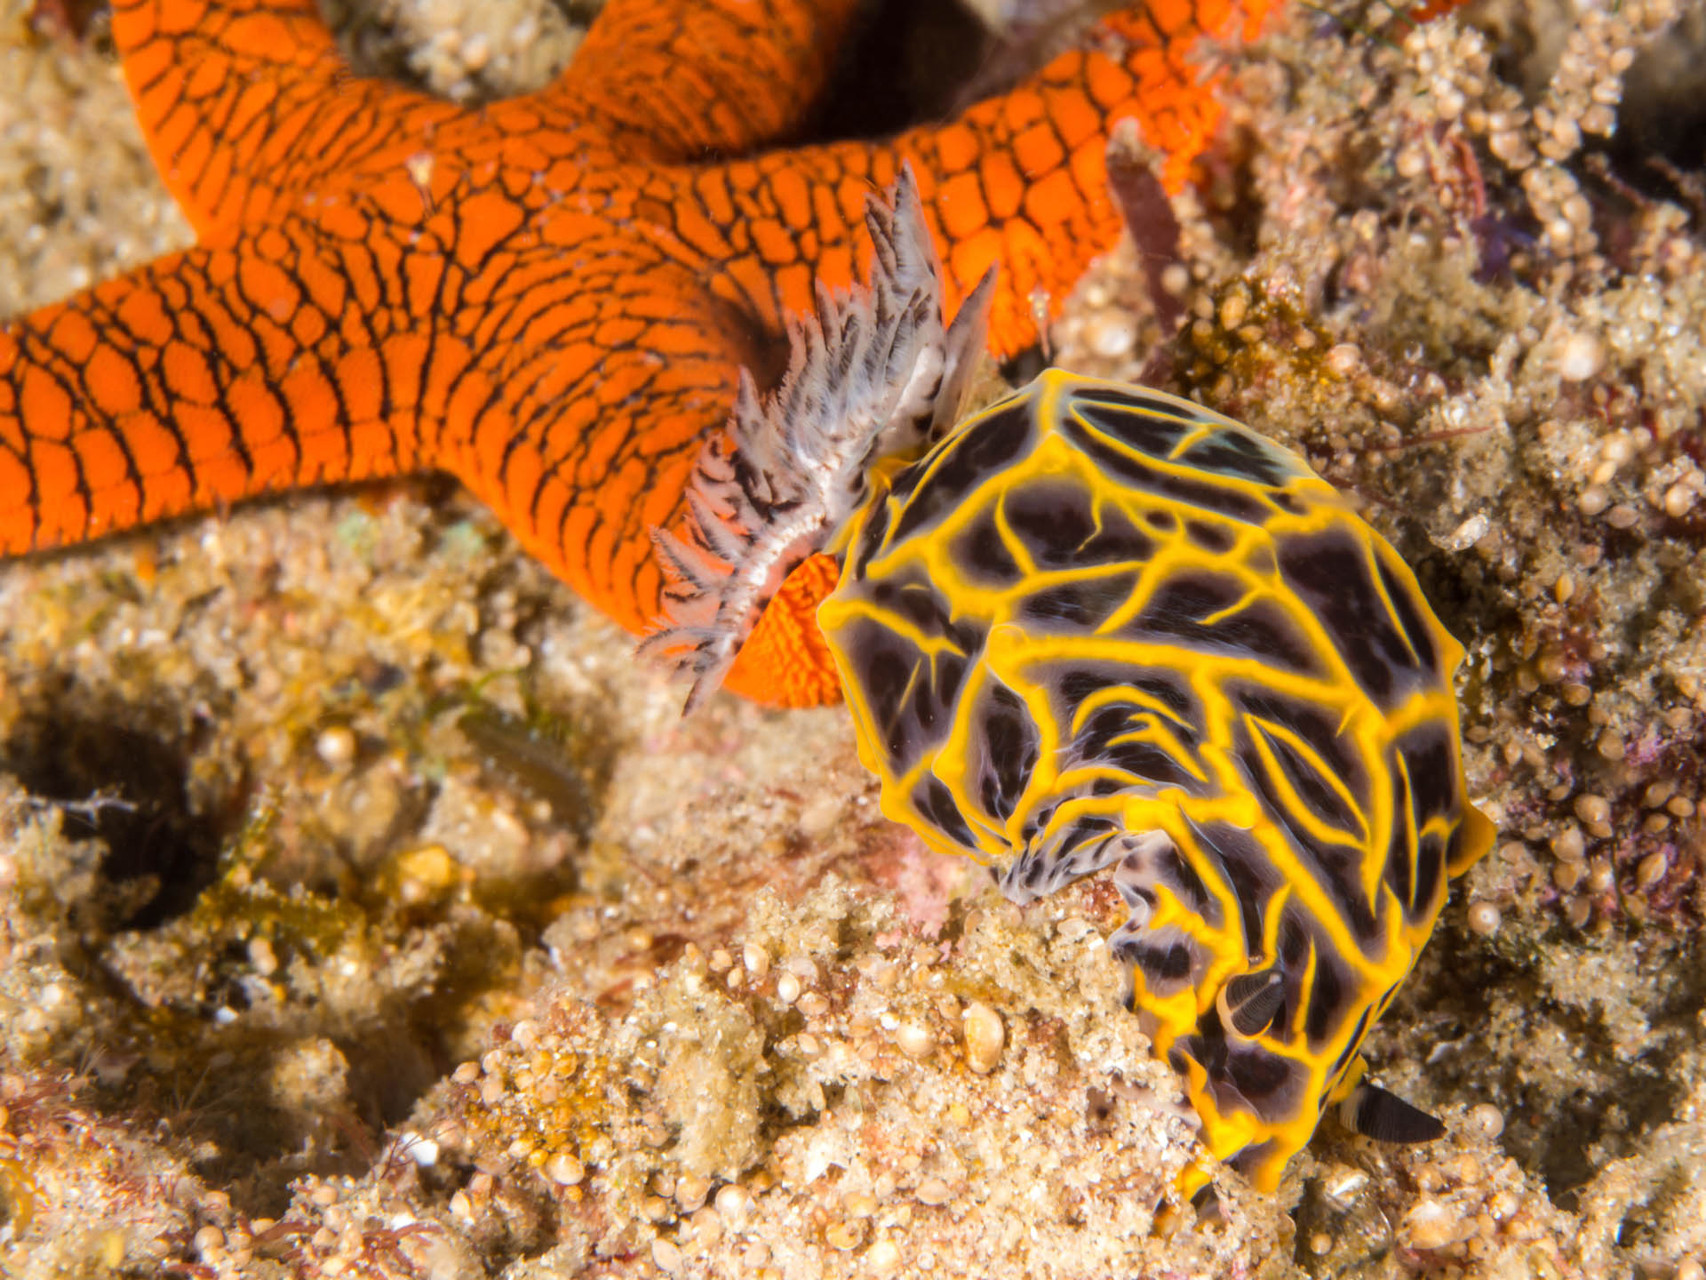 Sea star and nudibranch